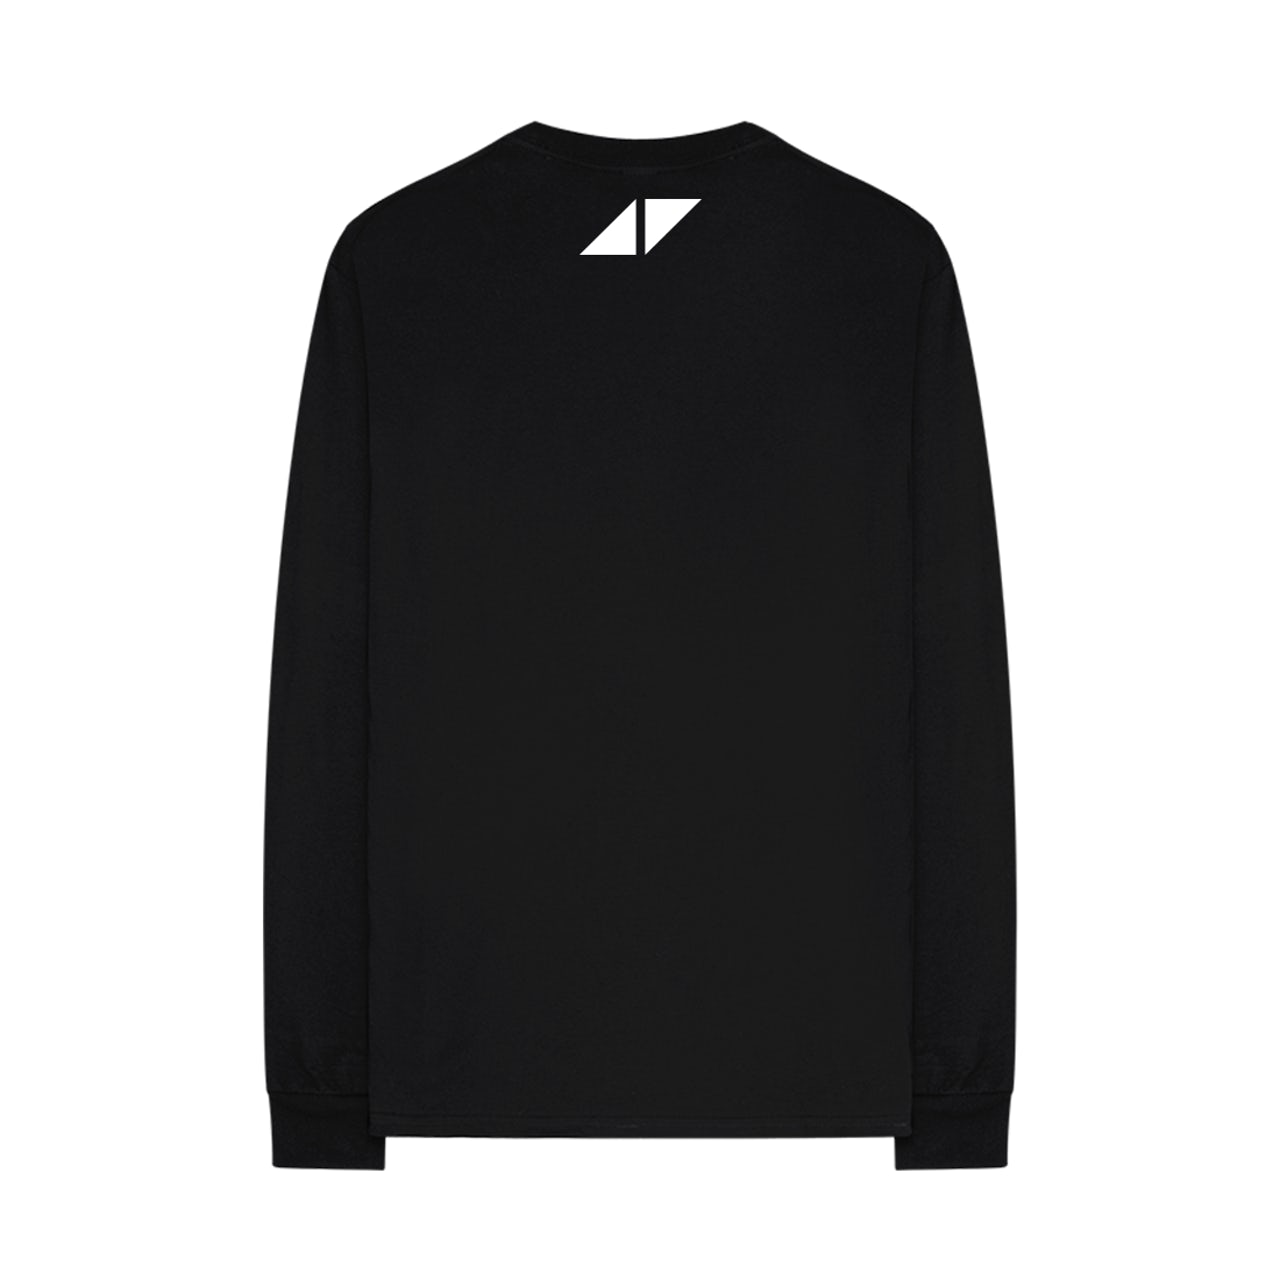 Avicii TIM LONG SLEEVE T-SHIRT + DIGITAL ALBUM